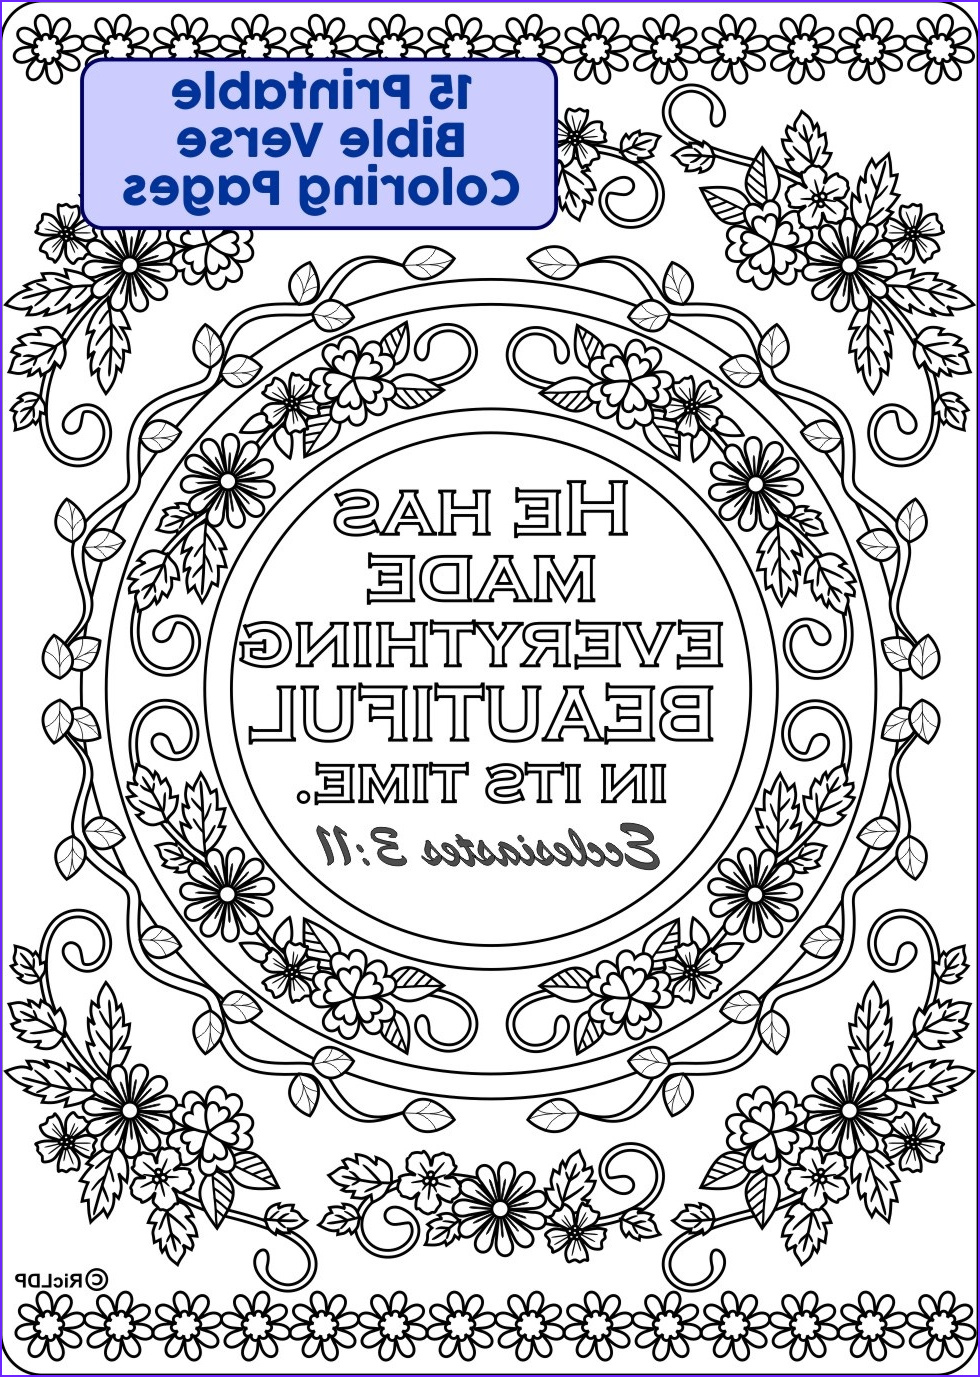 Printable Bible Coloring Pages Cool Image 15 Printable Bible Verse Coloring Pages